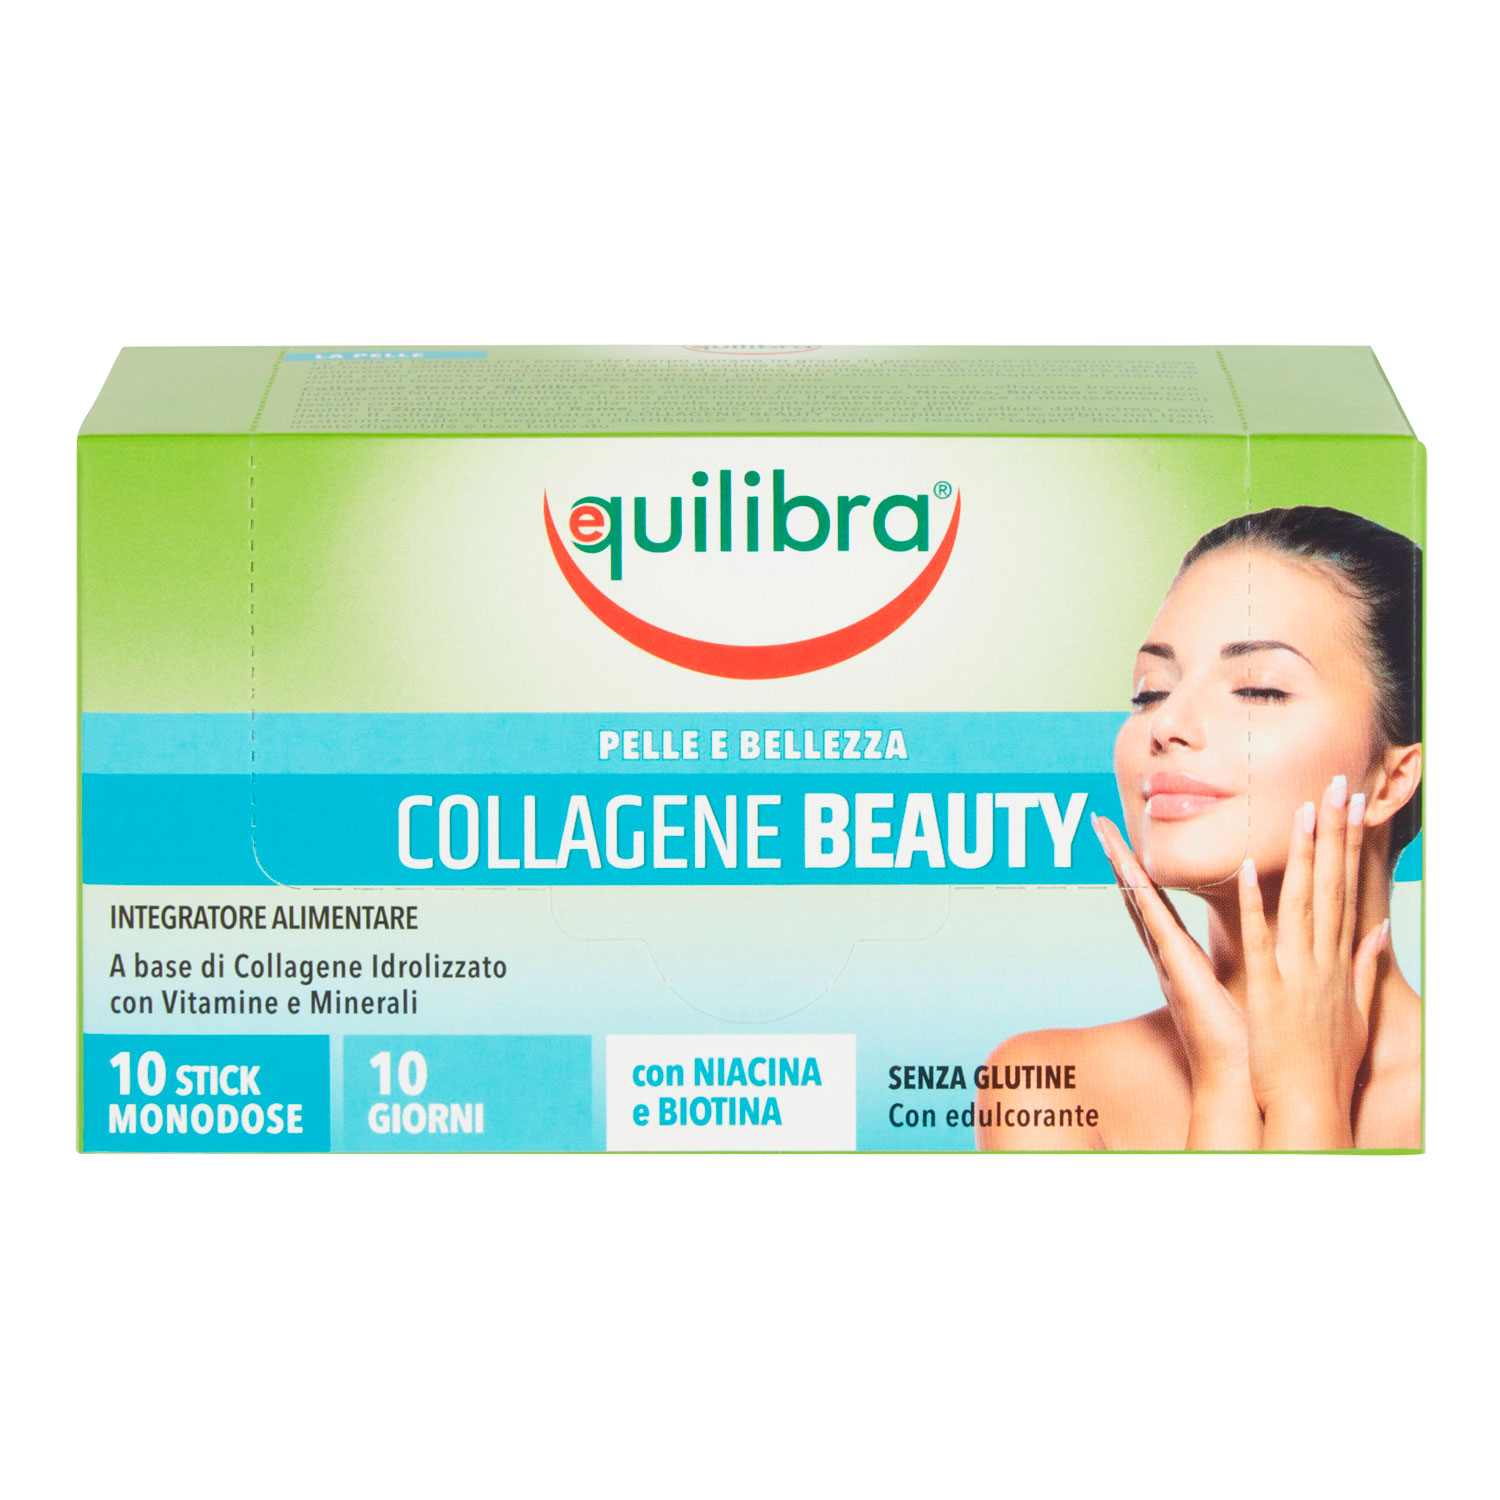 COLLAGENE BEAUTY 10 STICKPACK